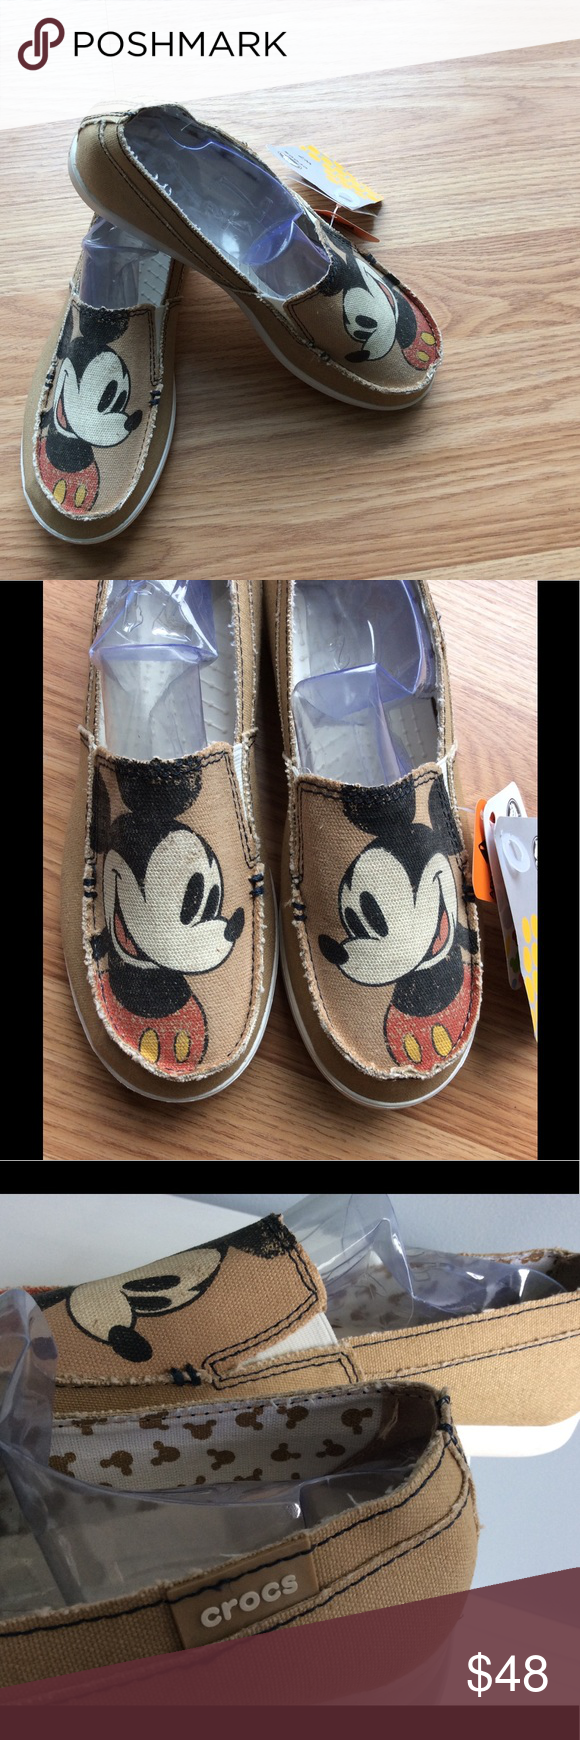 super cute skate shoes quality products Rare Mickey Mouse Women's Crocs Canvas Slip On Brand New With Tag ...